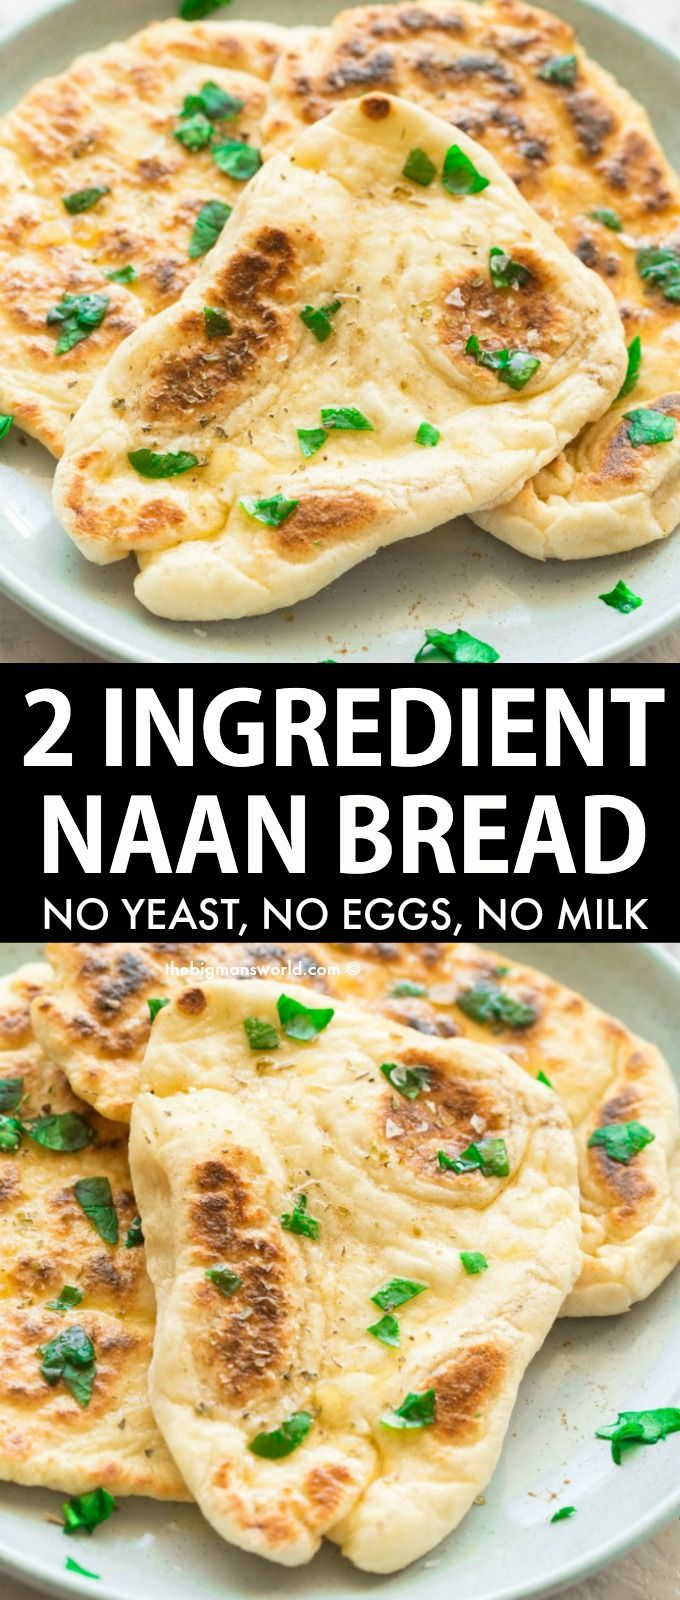 Photo of 2 Ingredient Naan Bread (No Yeast!)- Vegan and Gluten Free!